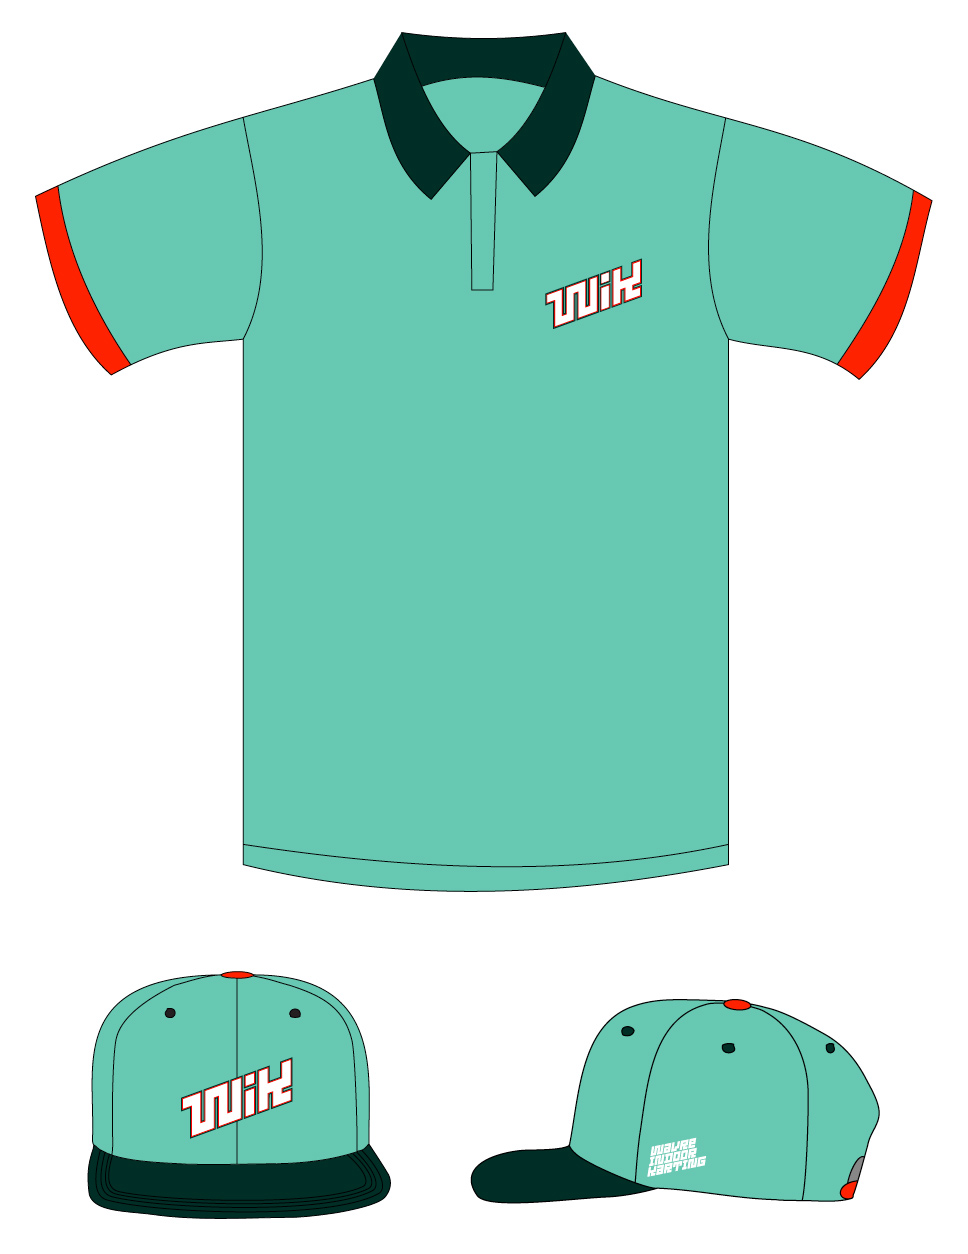 Club-sandwich-WIK-racing-polo-hat